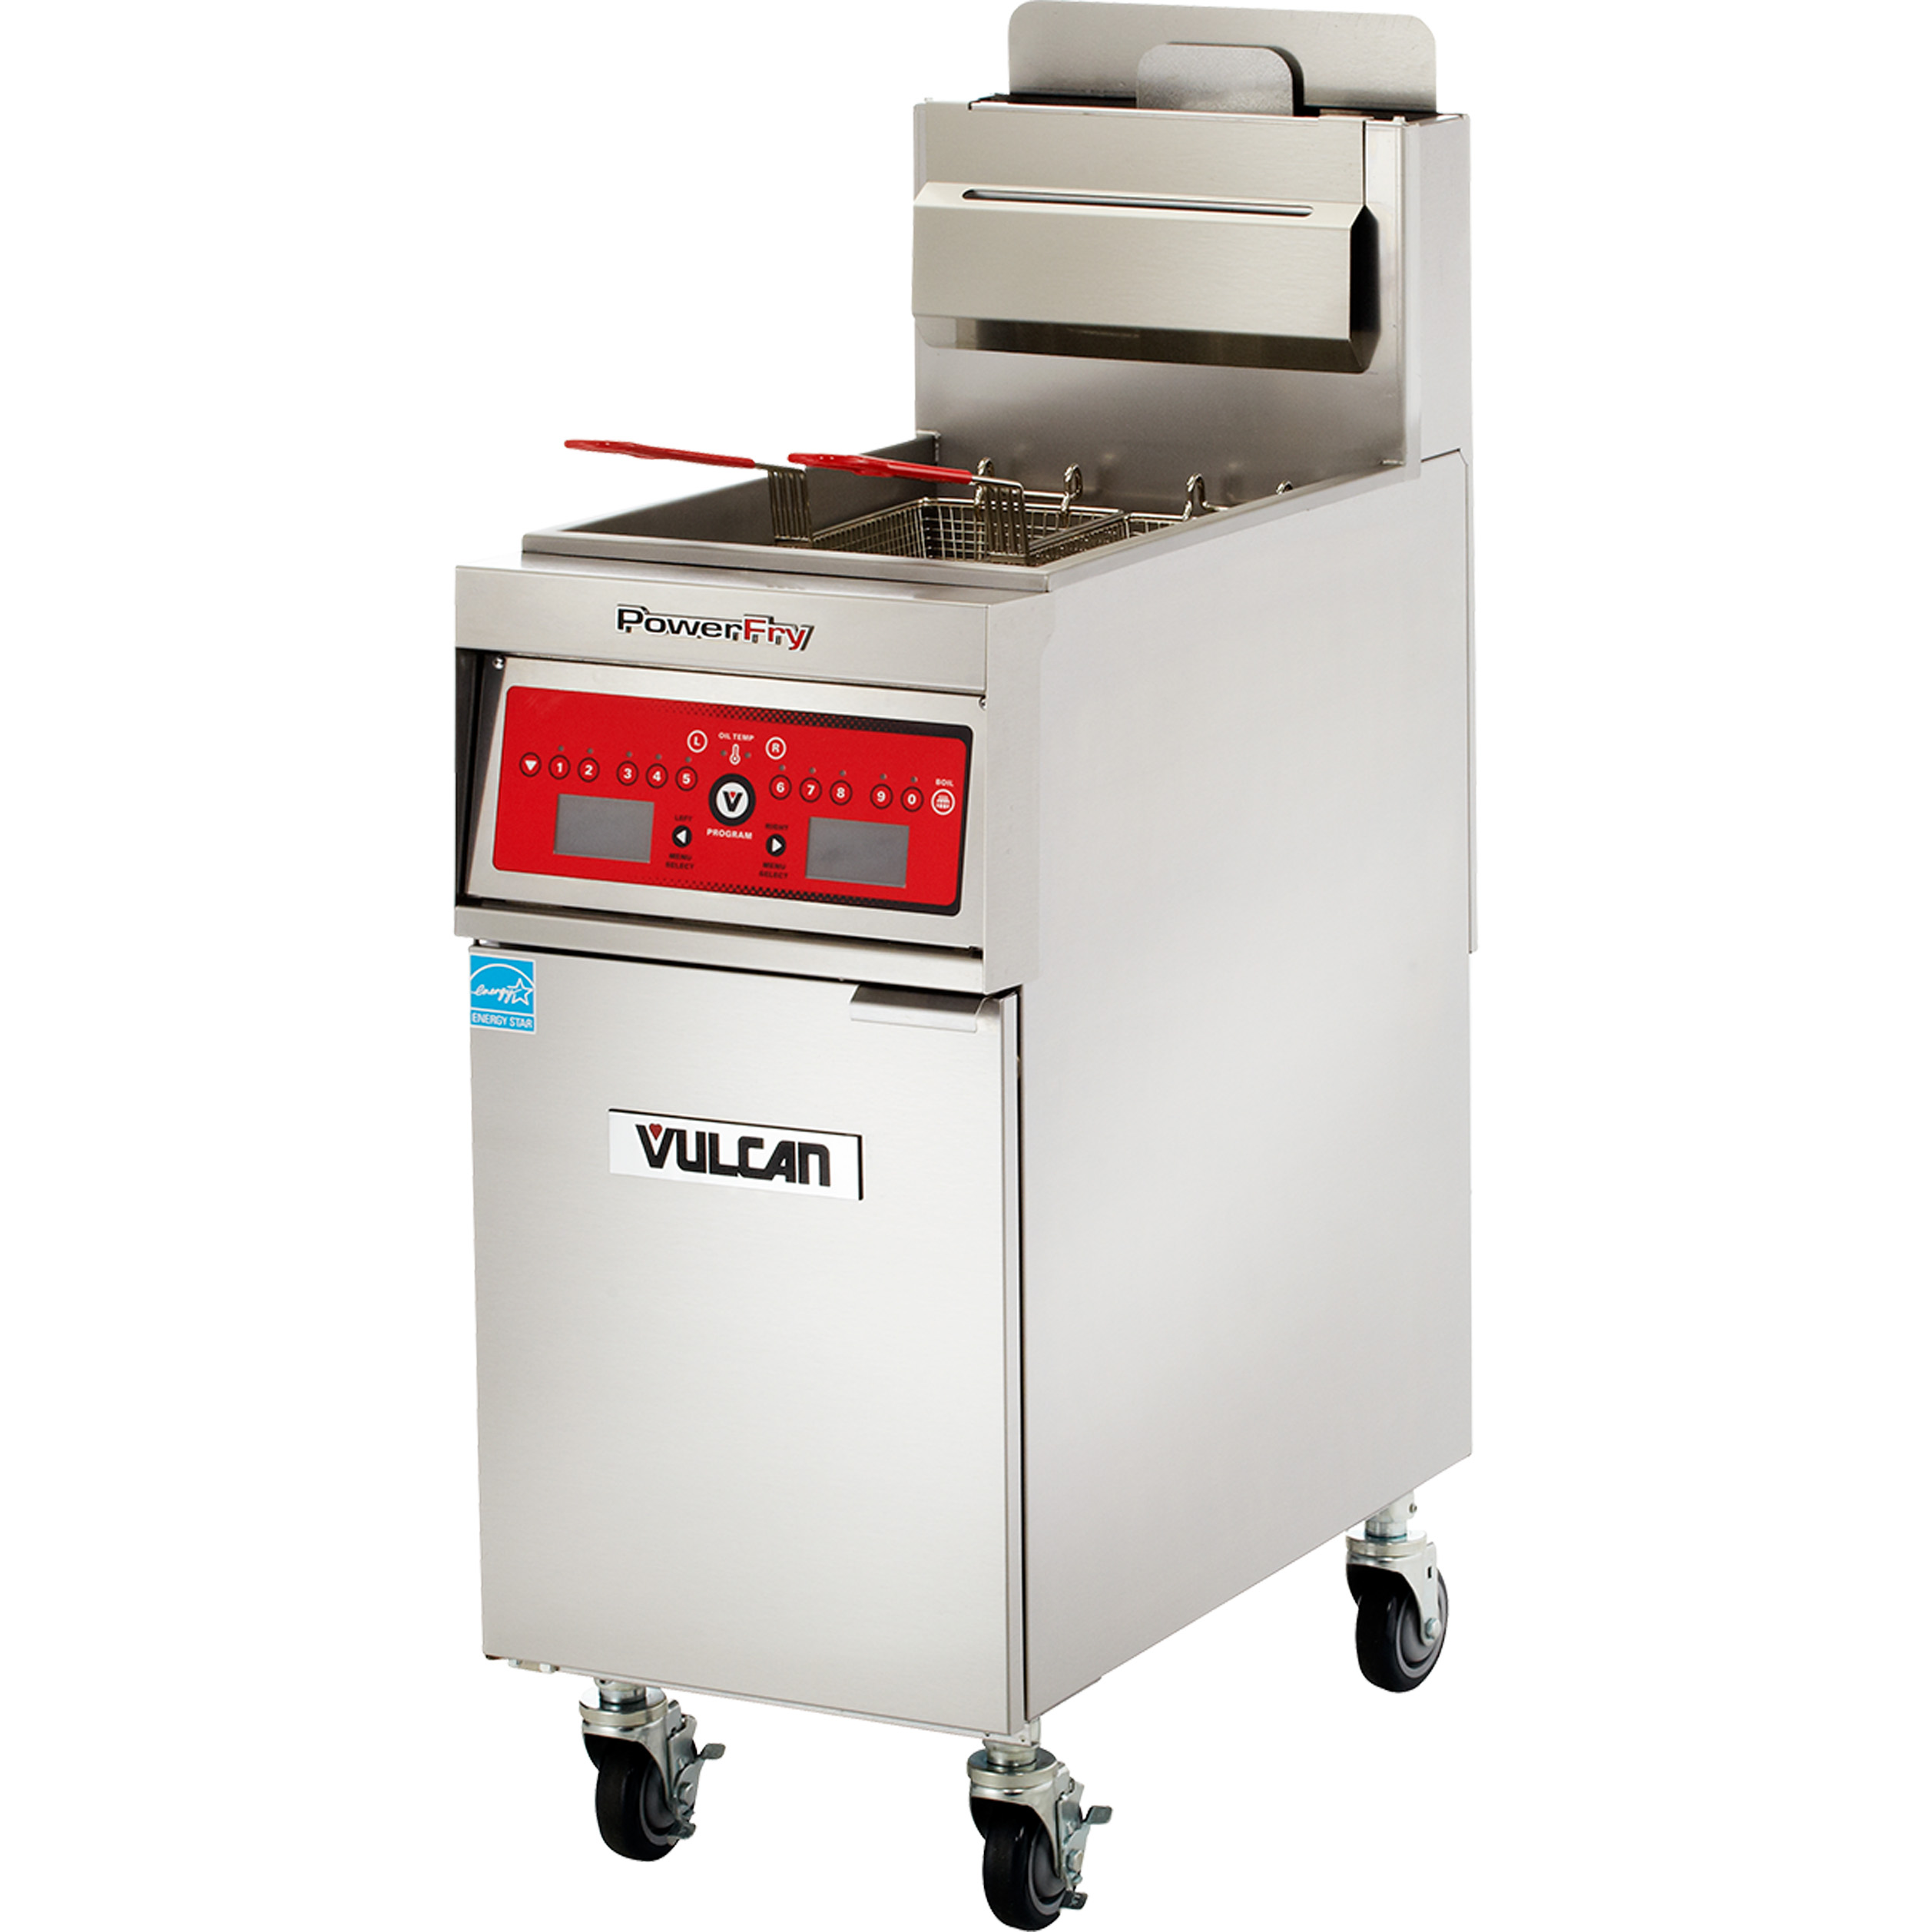 Vulcan 1VK65AF fryer, gas, floor model, full pot